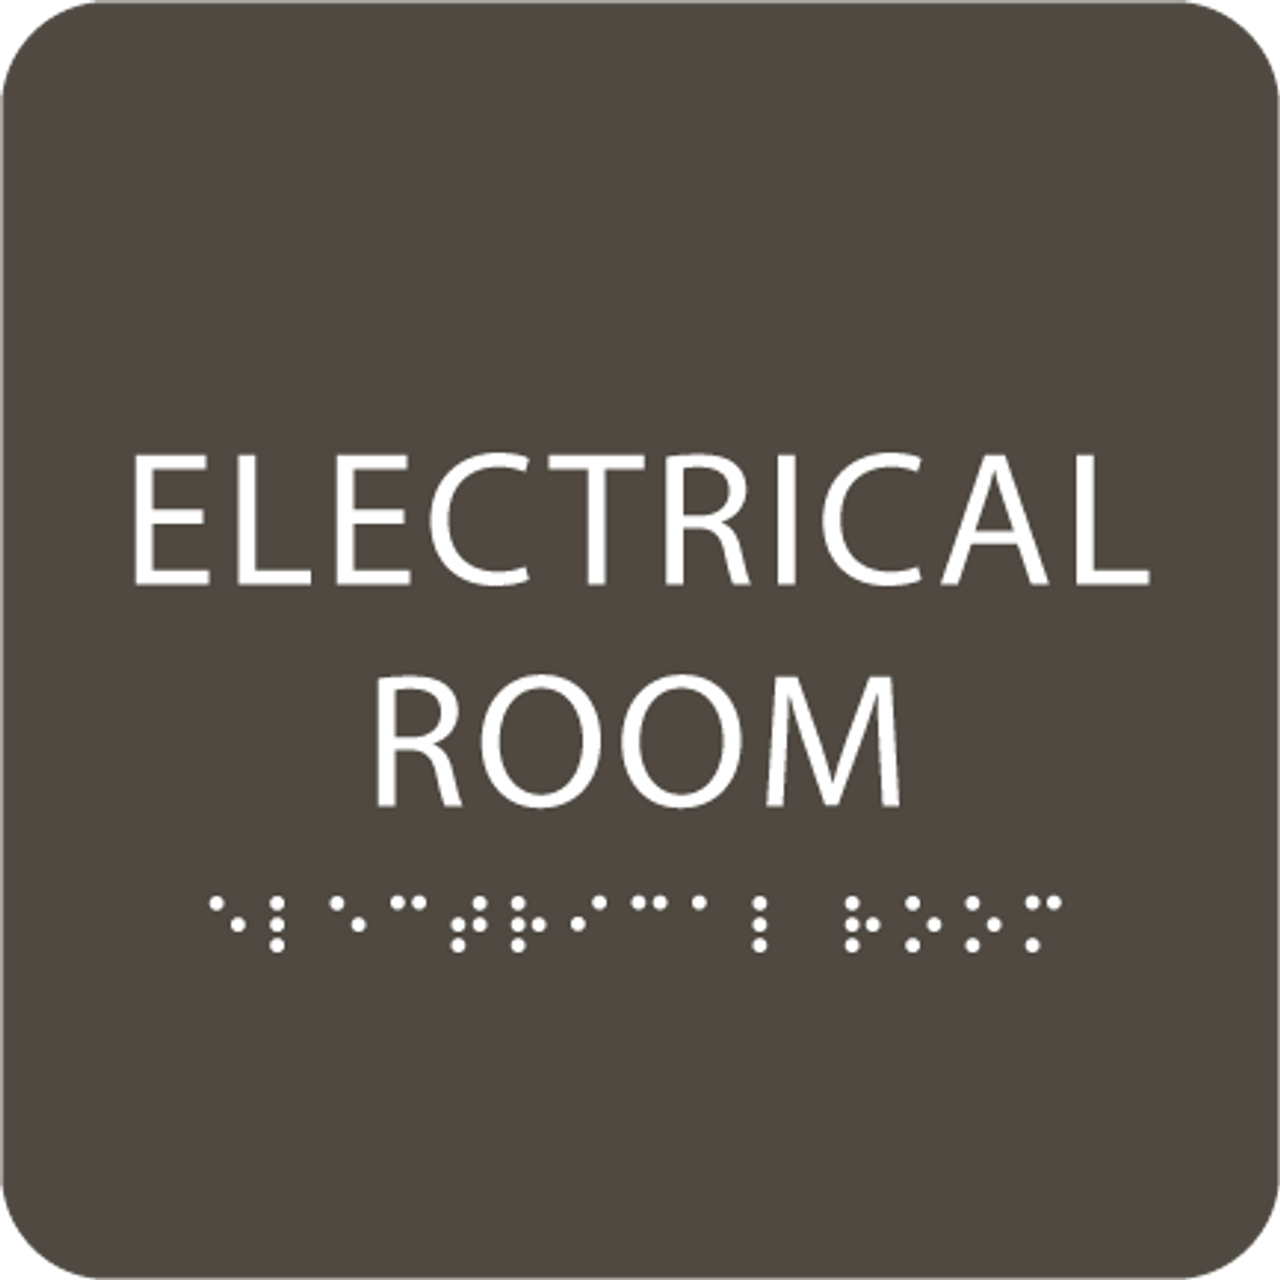 Olive Tactile Electrical Room Sign